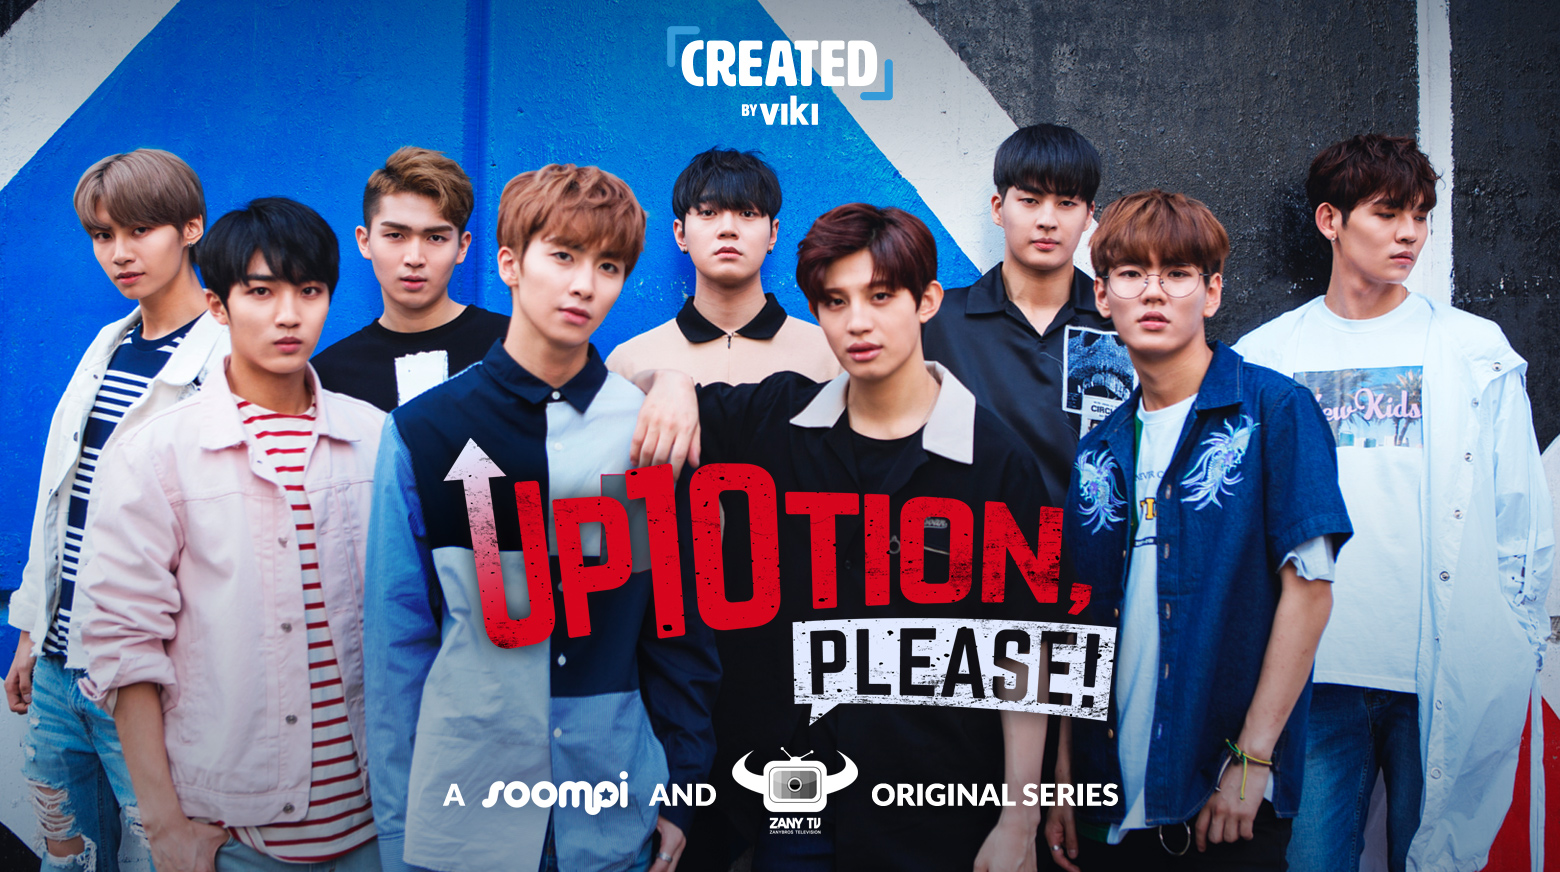 UP10TION, Please